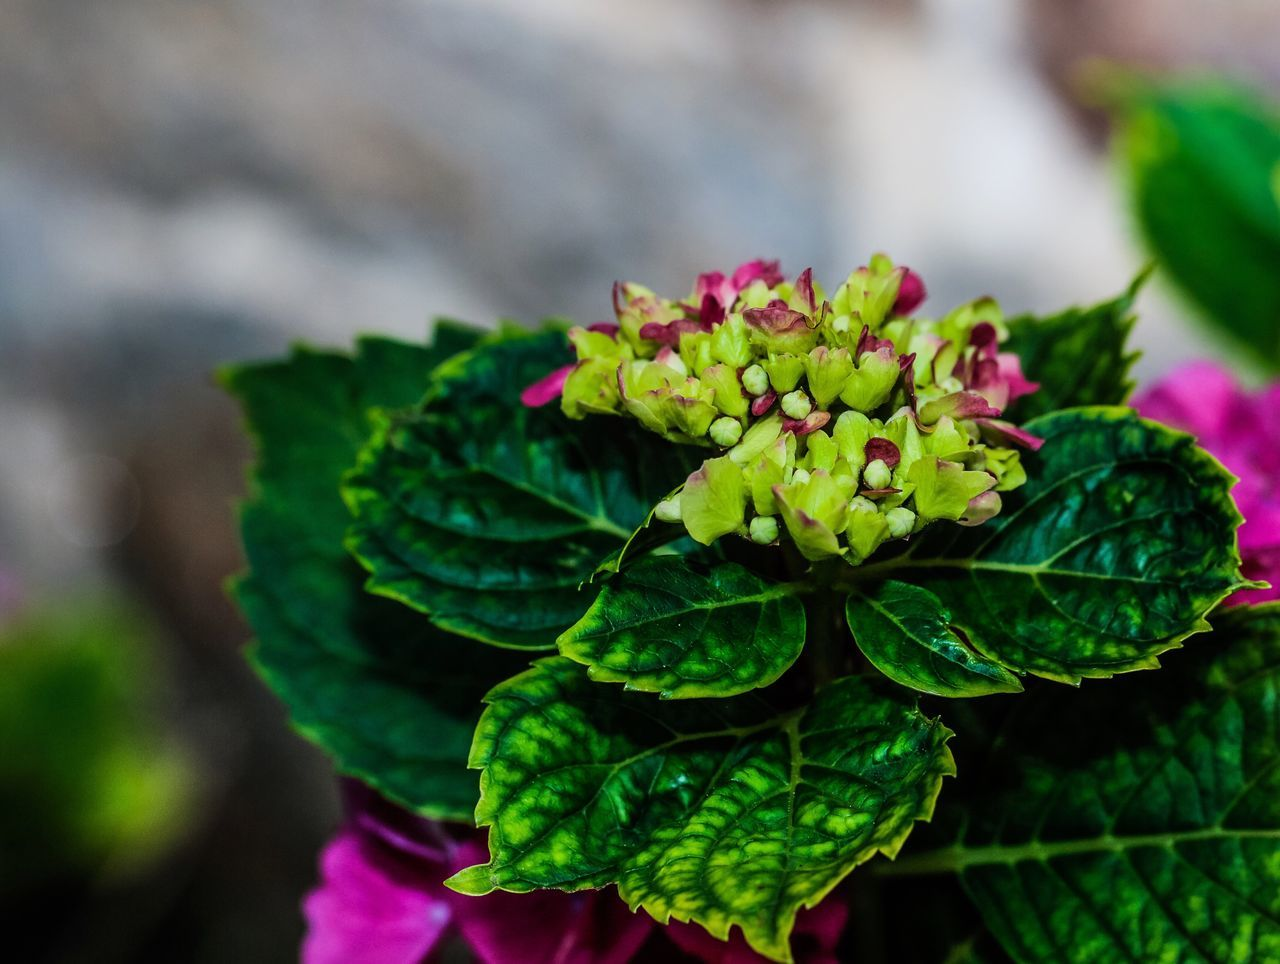 In two days this will be magnificent. Hydrangea Plant Plantlife Flower Flowers Garden Photography Budding Flower